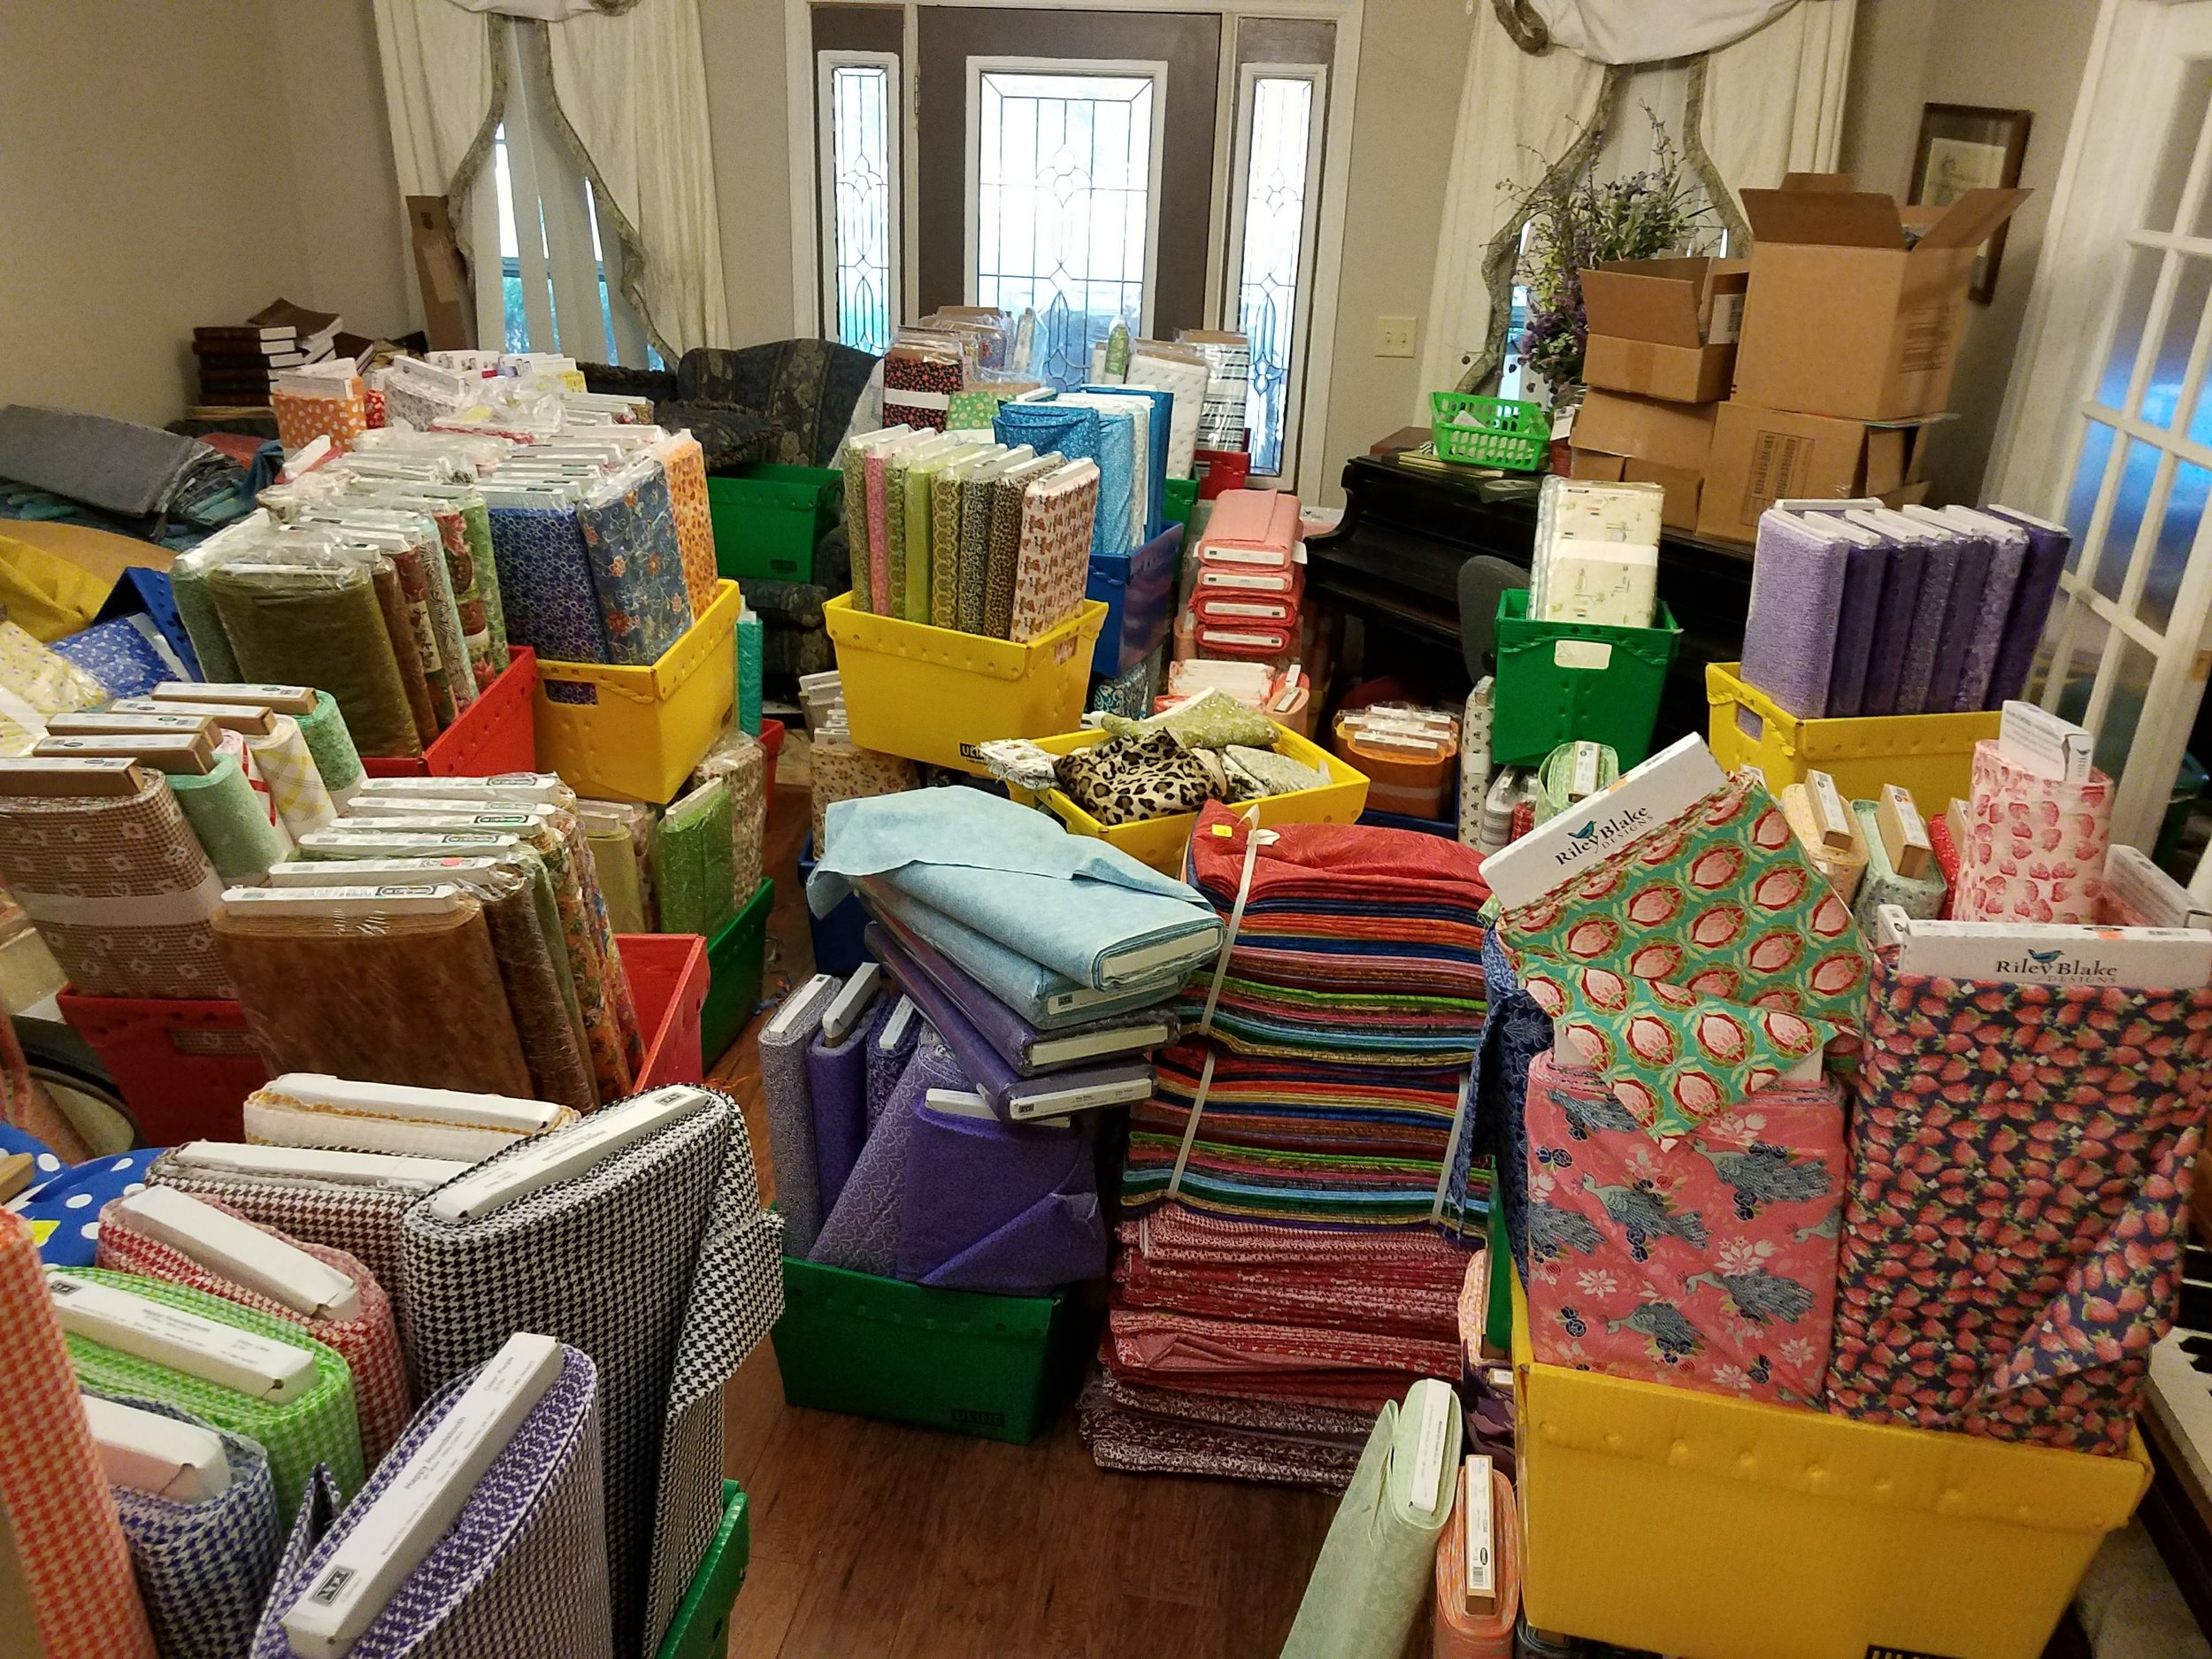 The house living room - has become a storage unit and holding spot.